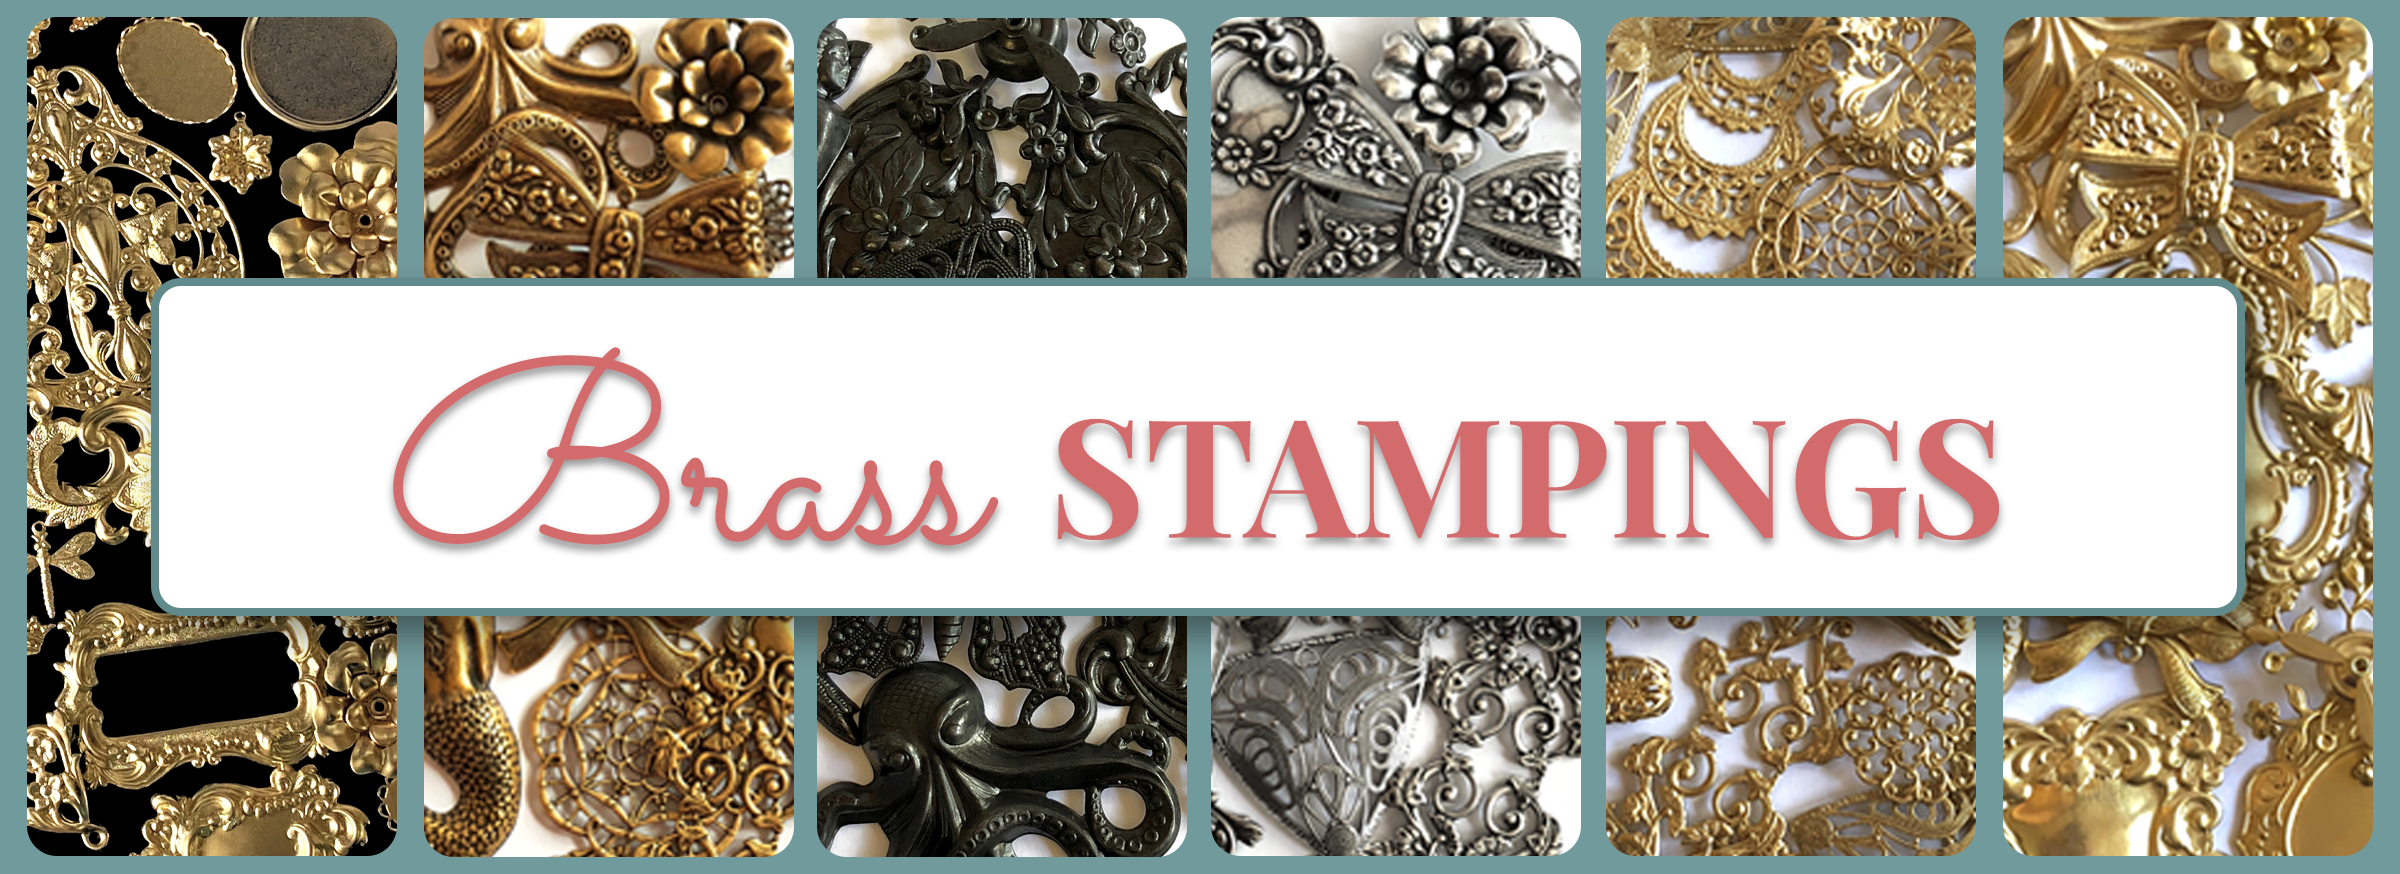 Vintage Brass Carved Stamping Findings Jewelry Supplies 18V10 1 piece